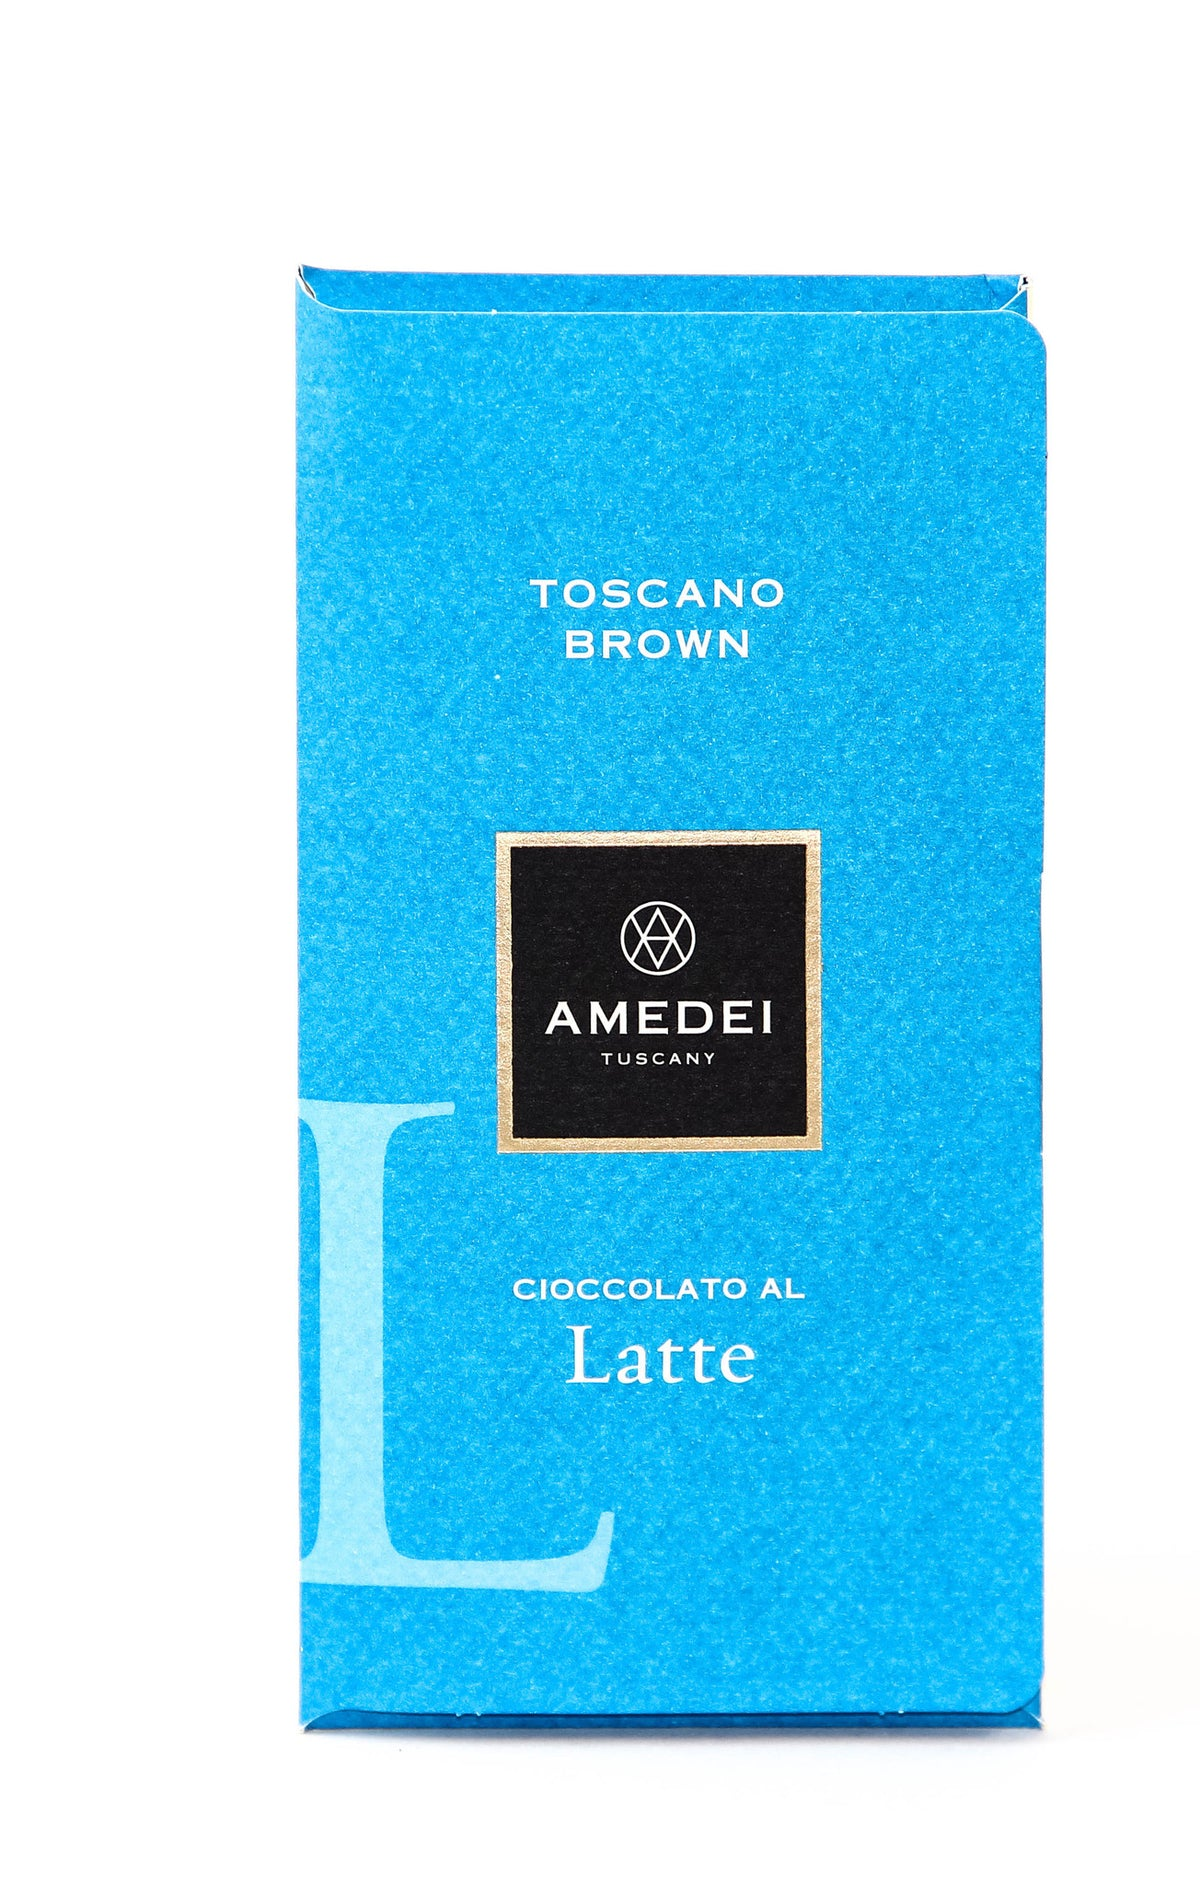 Amedei Toscano Brown 32% Milk Chocolate-Chocolate-The Meadow